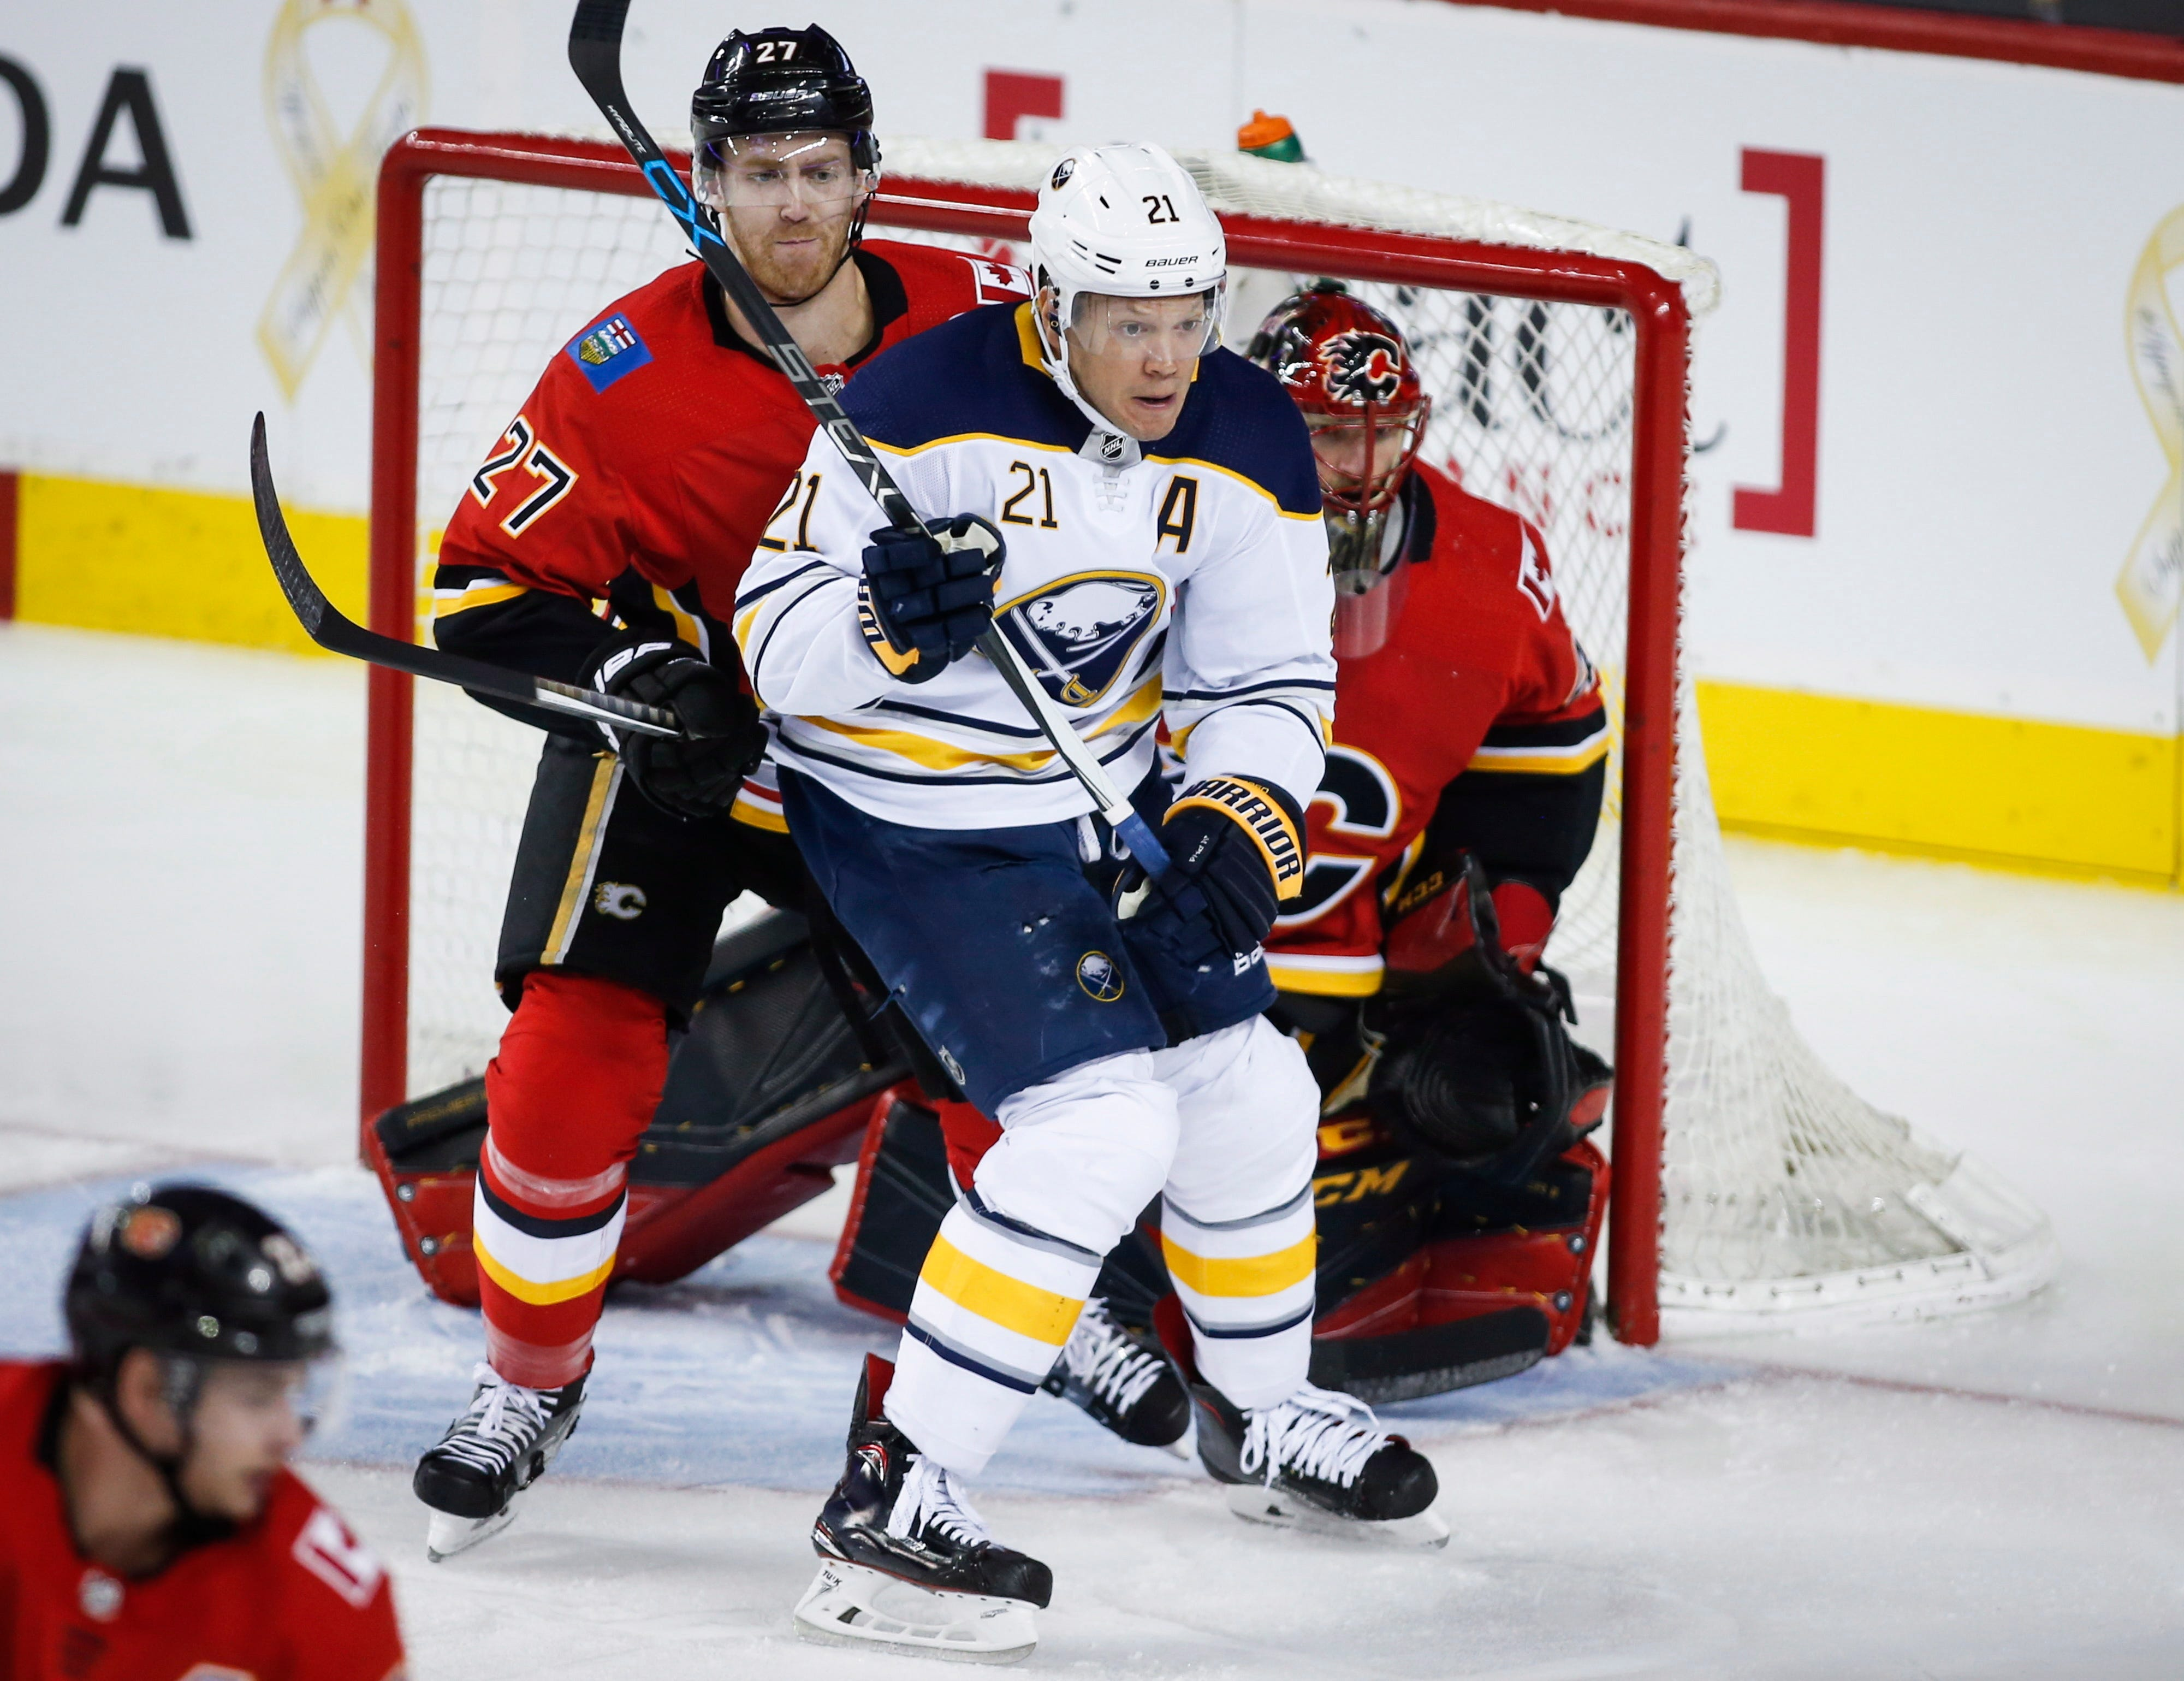 Eichel scores in OT to give Sabres rare win in Calgary